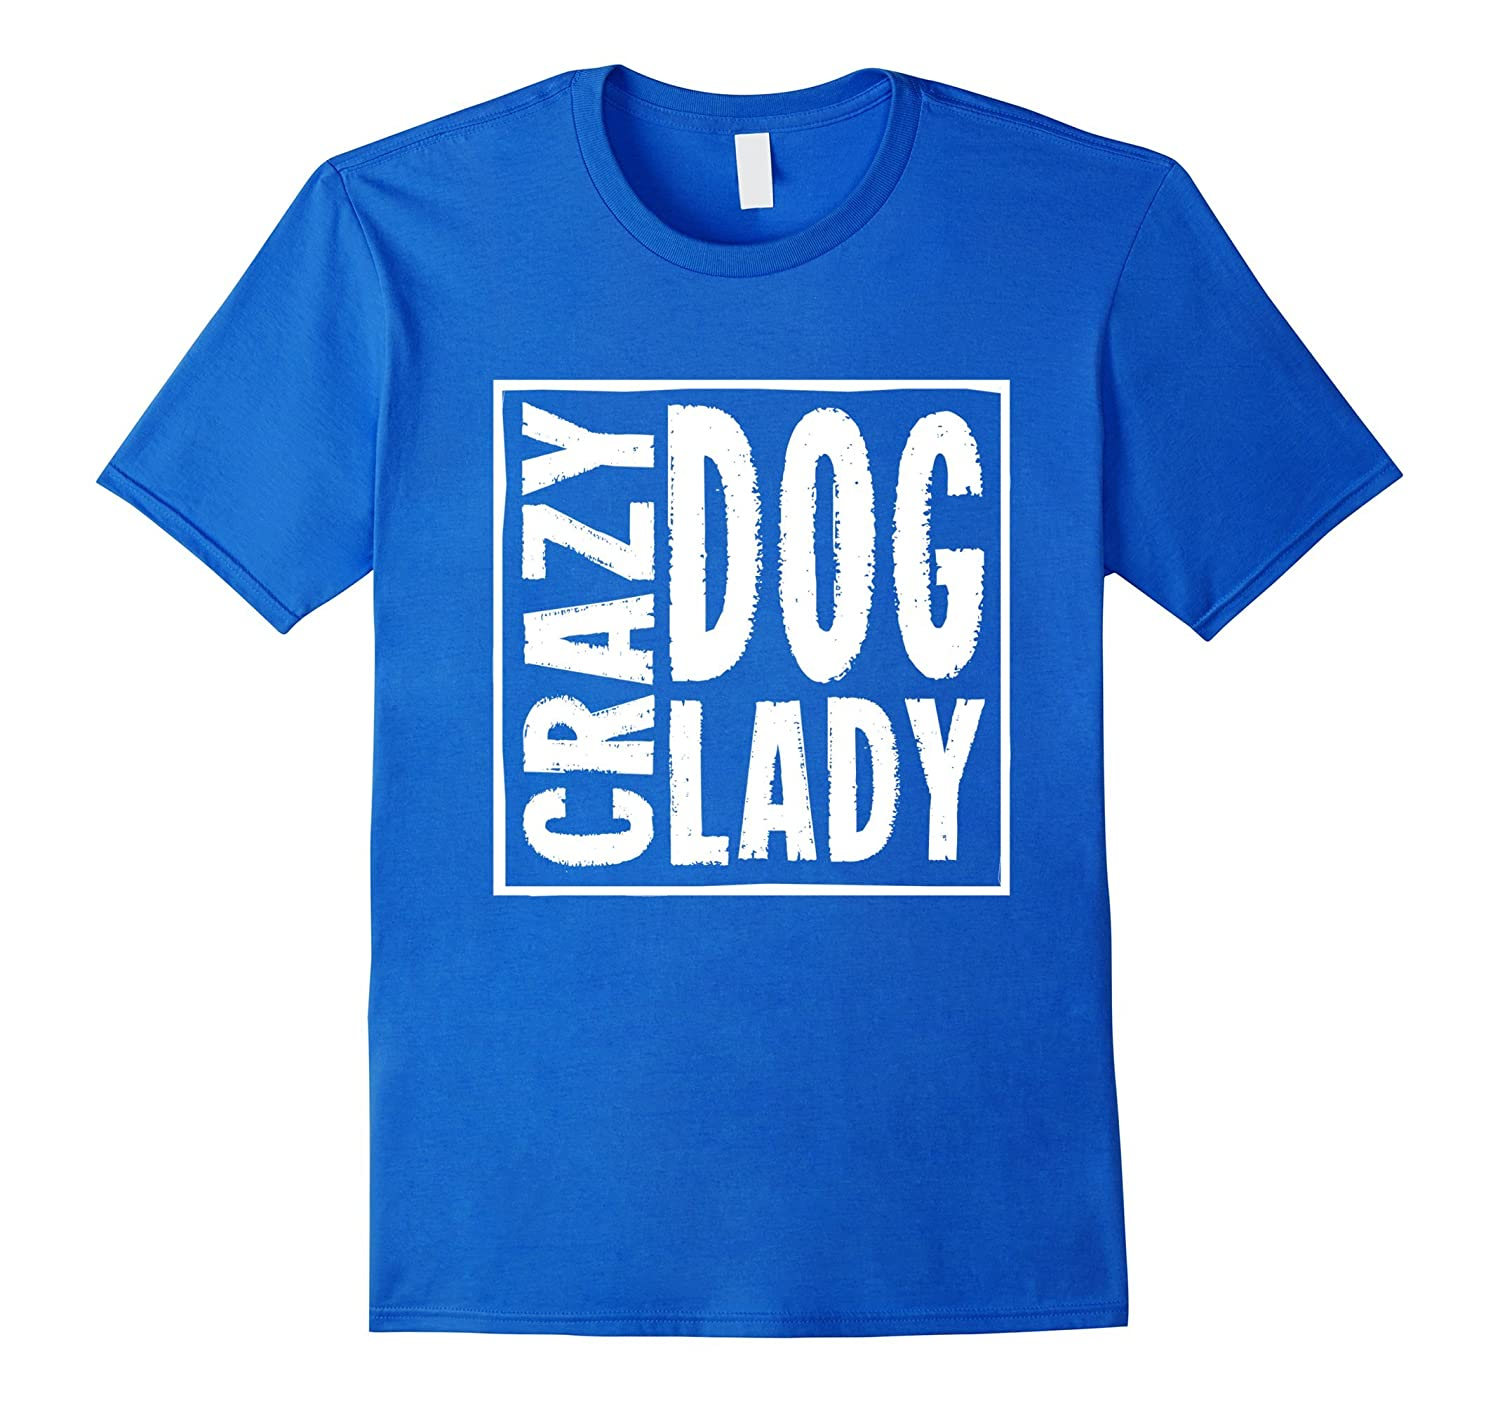 Aw Cute Dog Shirts Crazy Dog Lady Funny Dogs T-shirt Shirt-BN